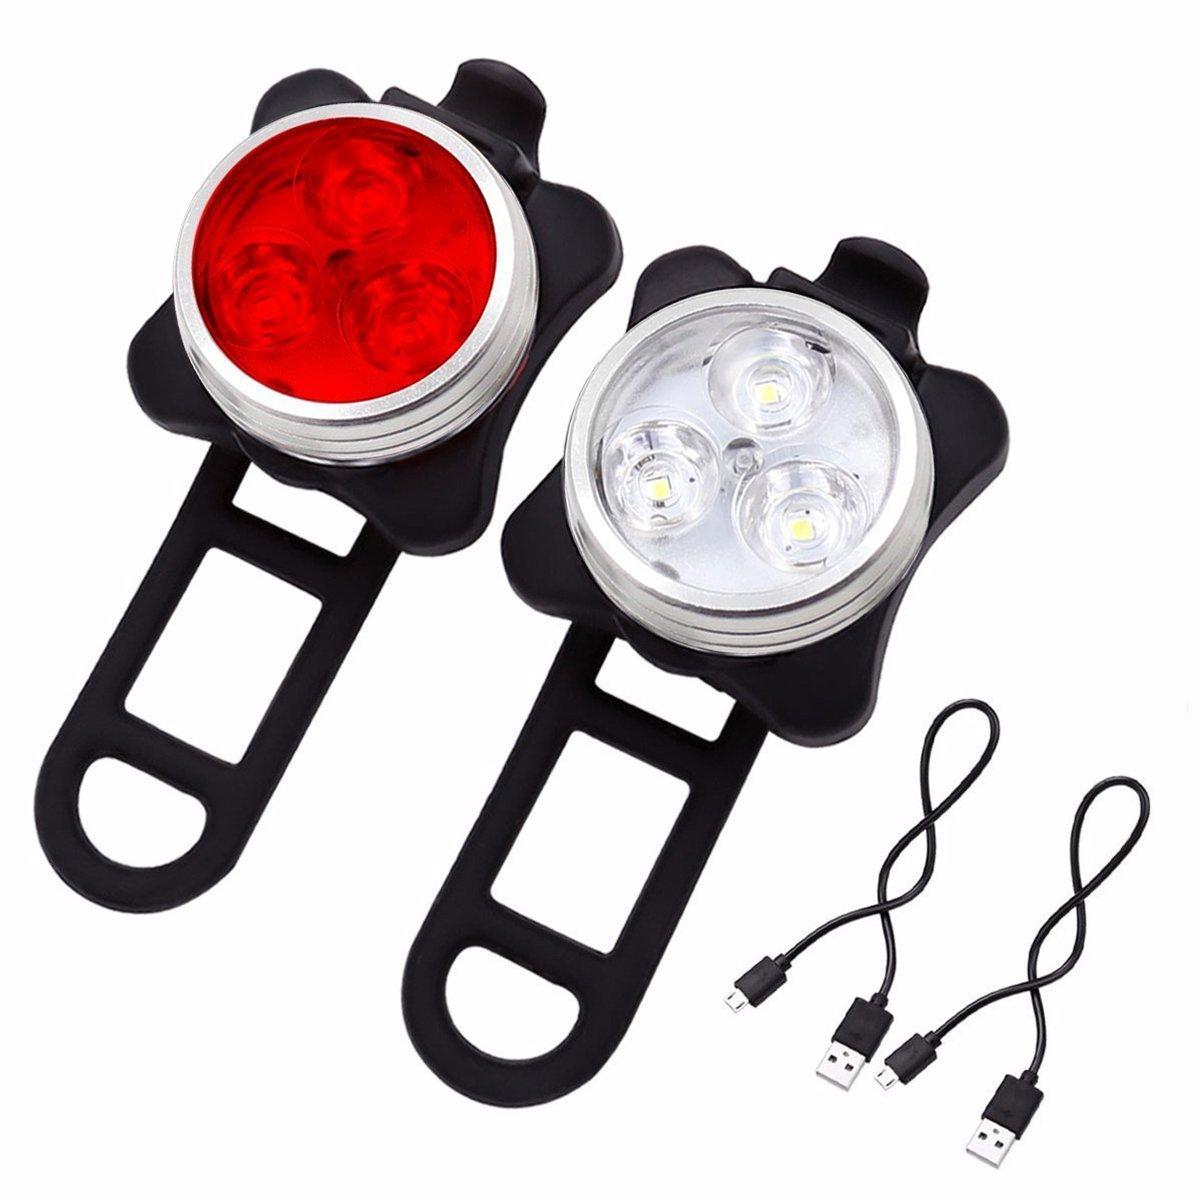 SOKLIT USB Rechargeable Bike Light Front and Rear Waterproof IPX4 Super Bright Bicycle LED Light Set 120 Lumen with 650mah Lithium Battery, 4 Light Mode Options, Including 6 Strap and 2 USB Cables by SOKLIT (Image #9)